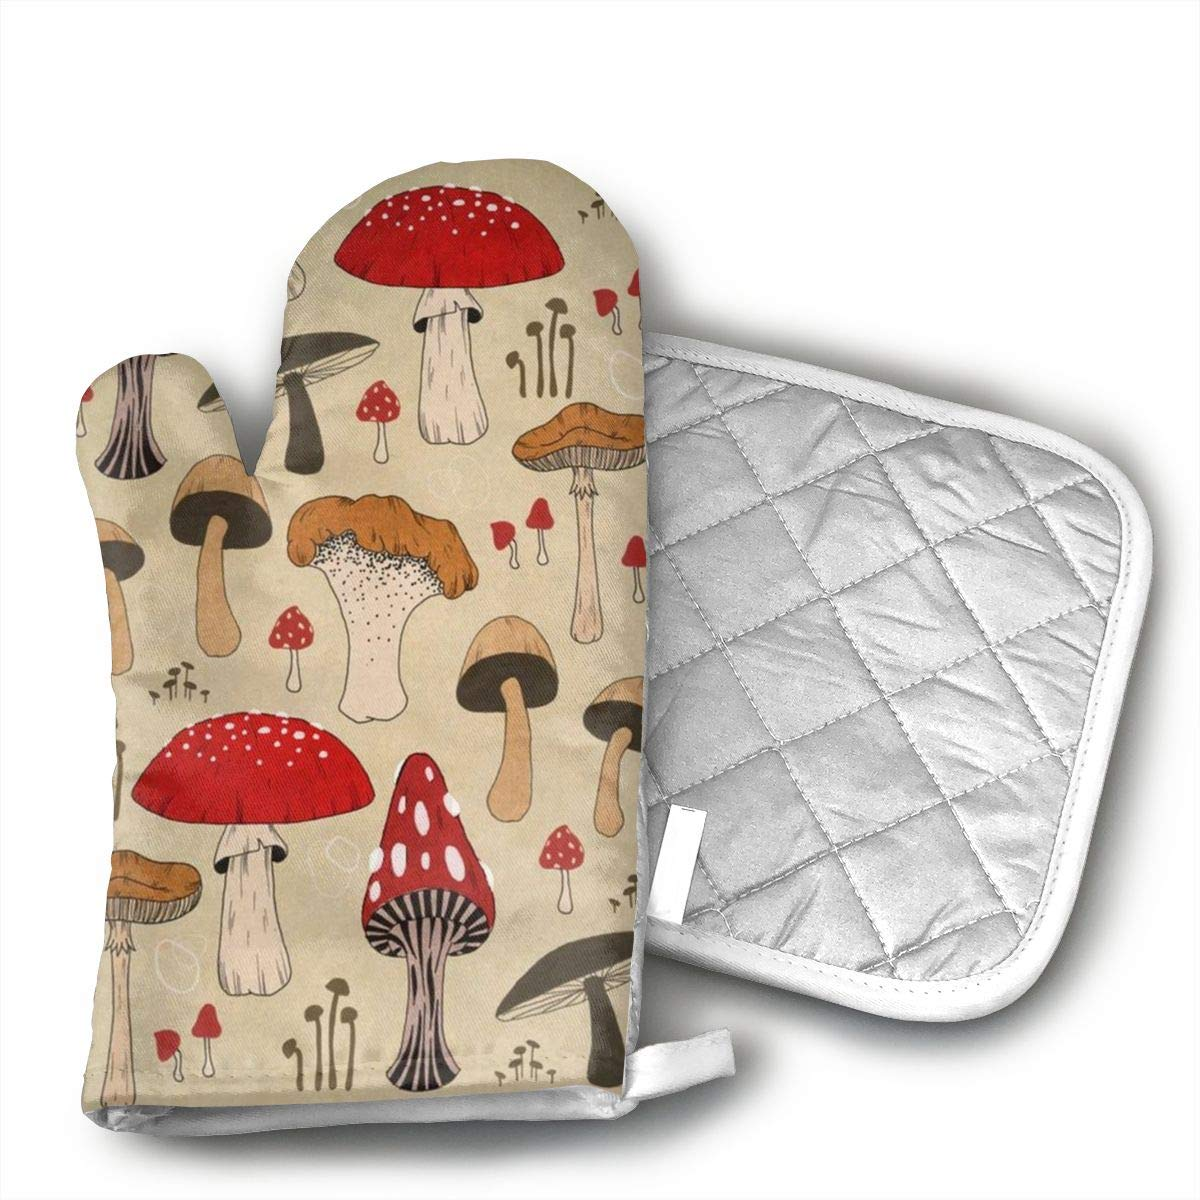 CHWEYAQ The Various Mushroom Art Oven Mitts,Professional Heat Resistant Microwave Oven Insulation Thickening Gloves Soft Inner Lining Kitchen Cooking Mittens